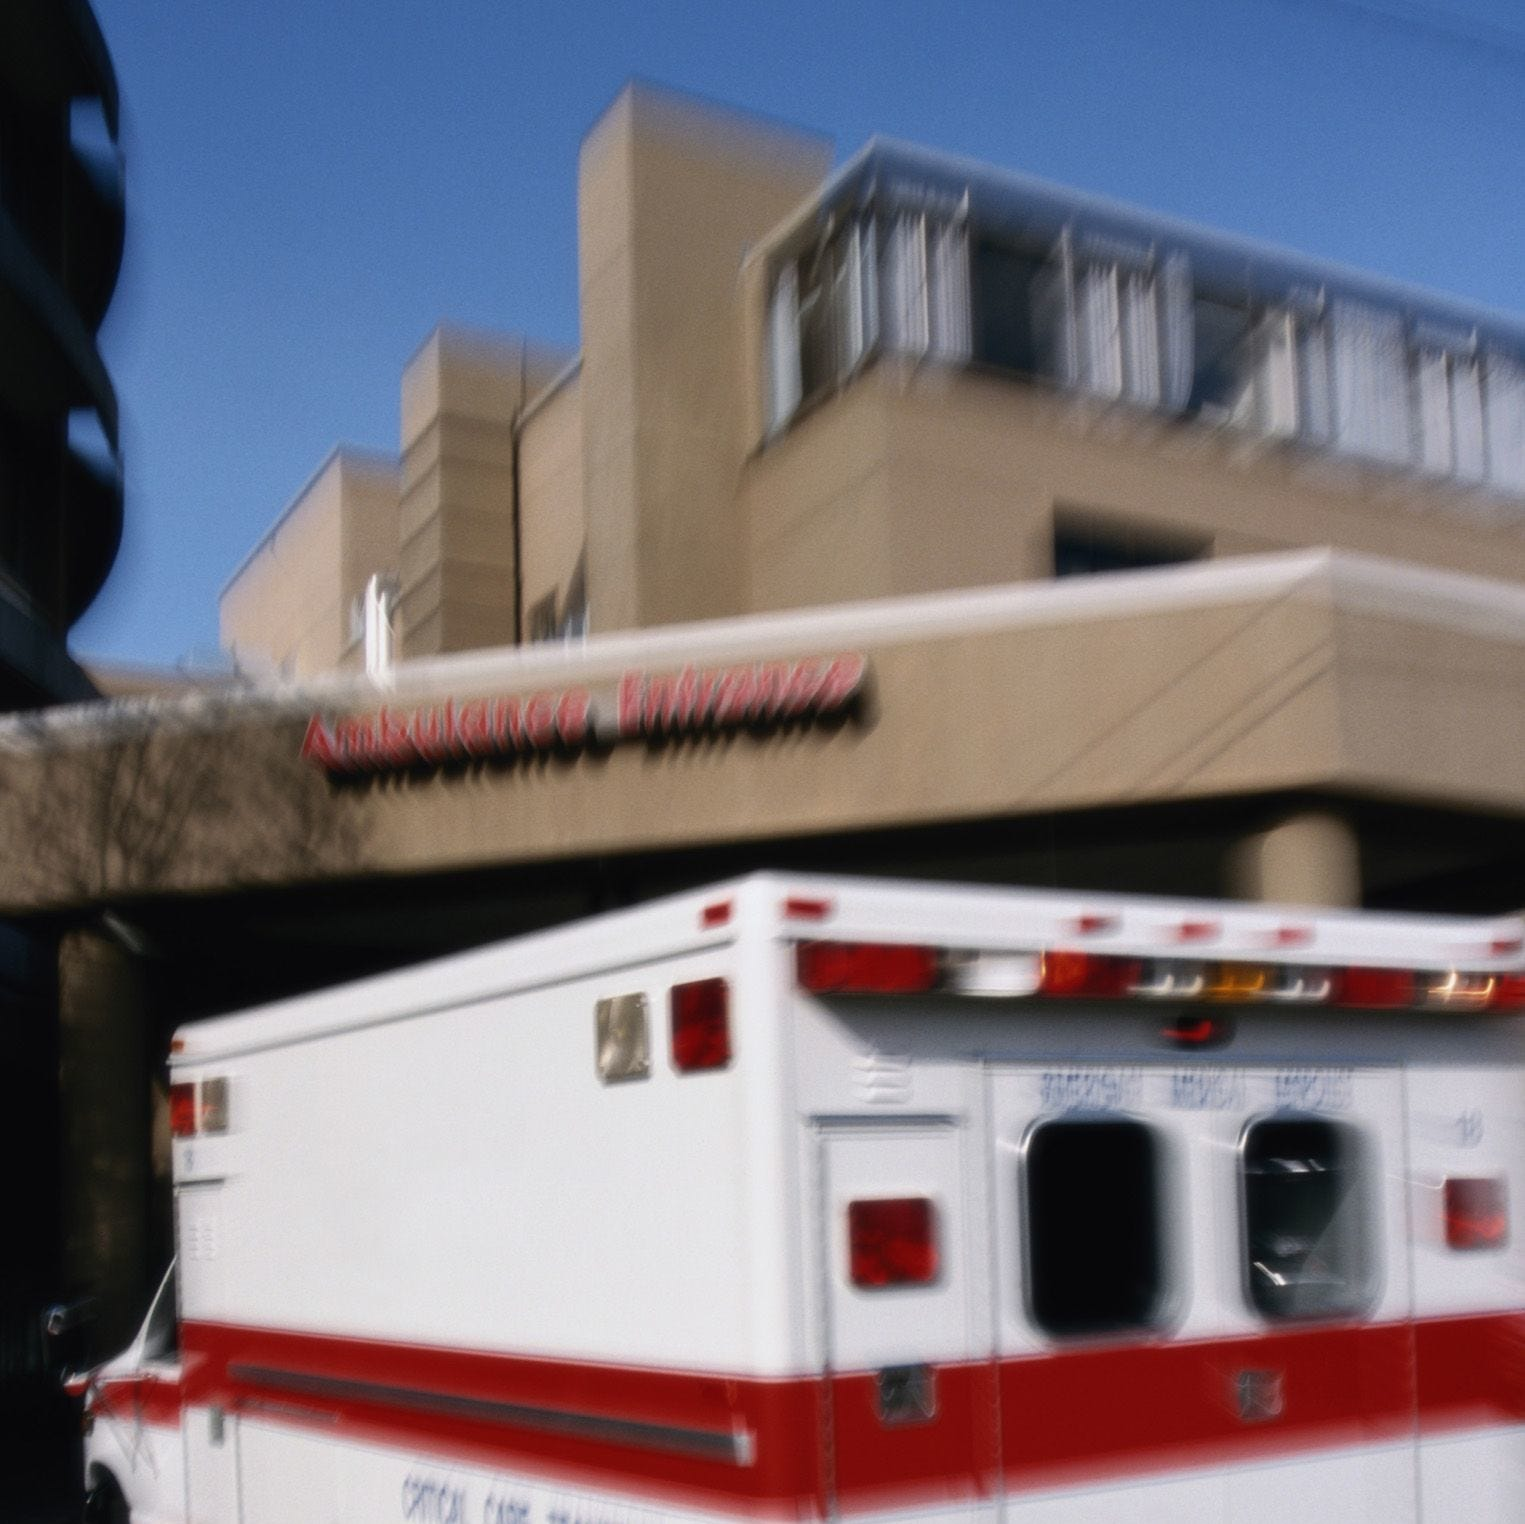 Ambulance diversions rare for crews in eastern and central Wisconsin